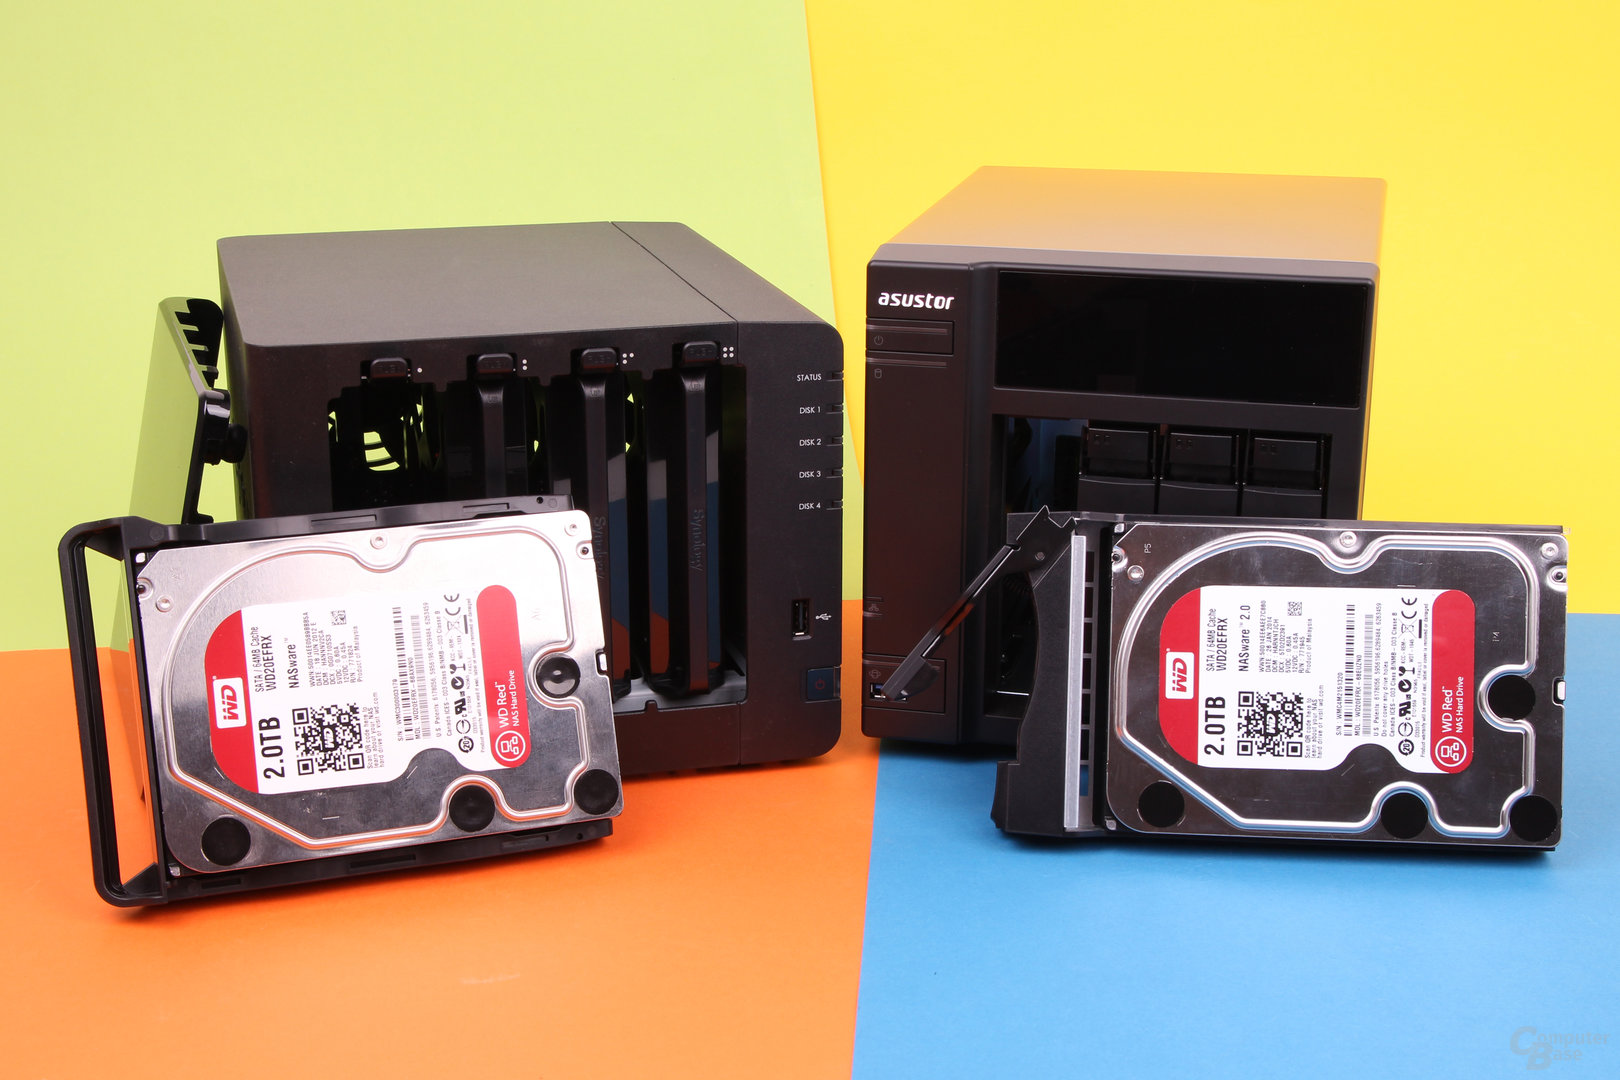 Synology DS414 & Asustor AS-204TE